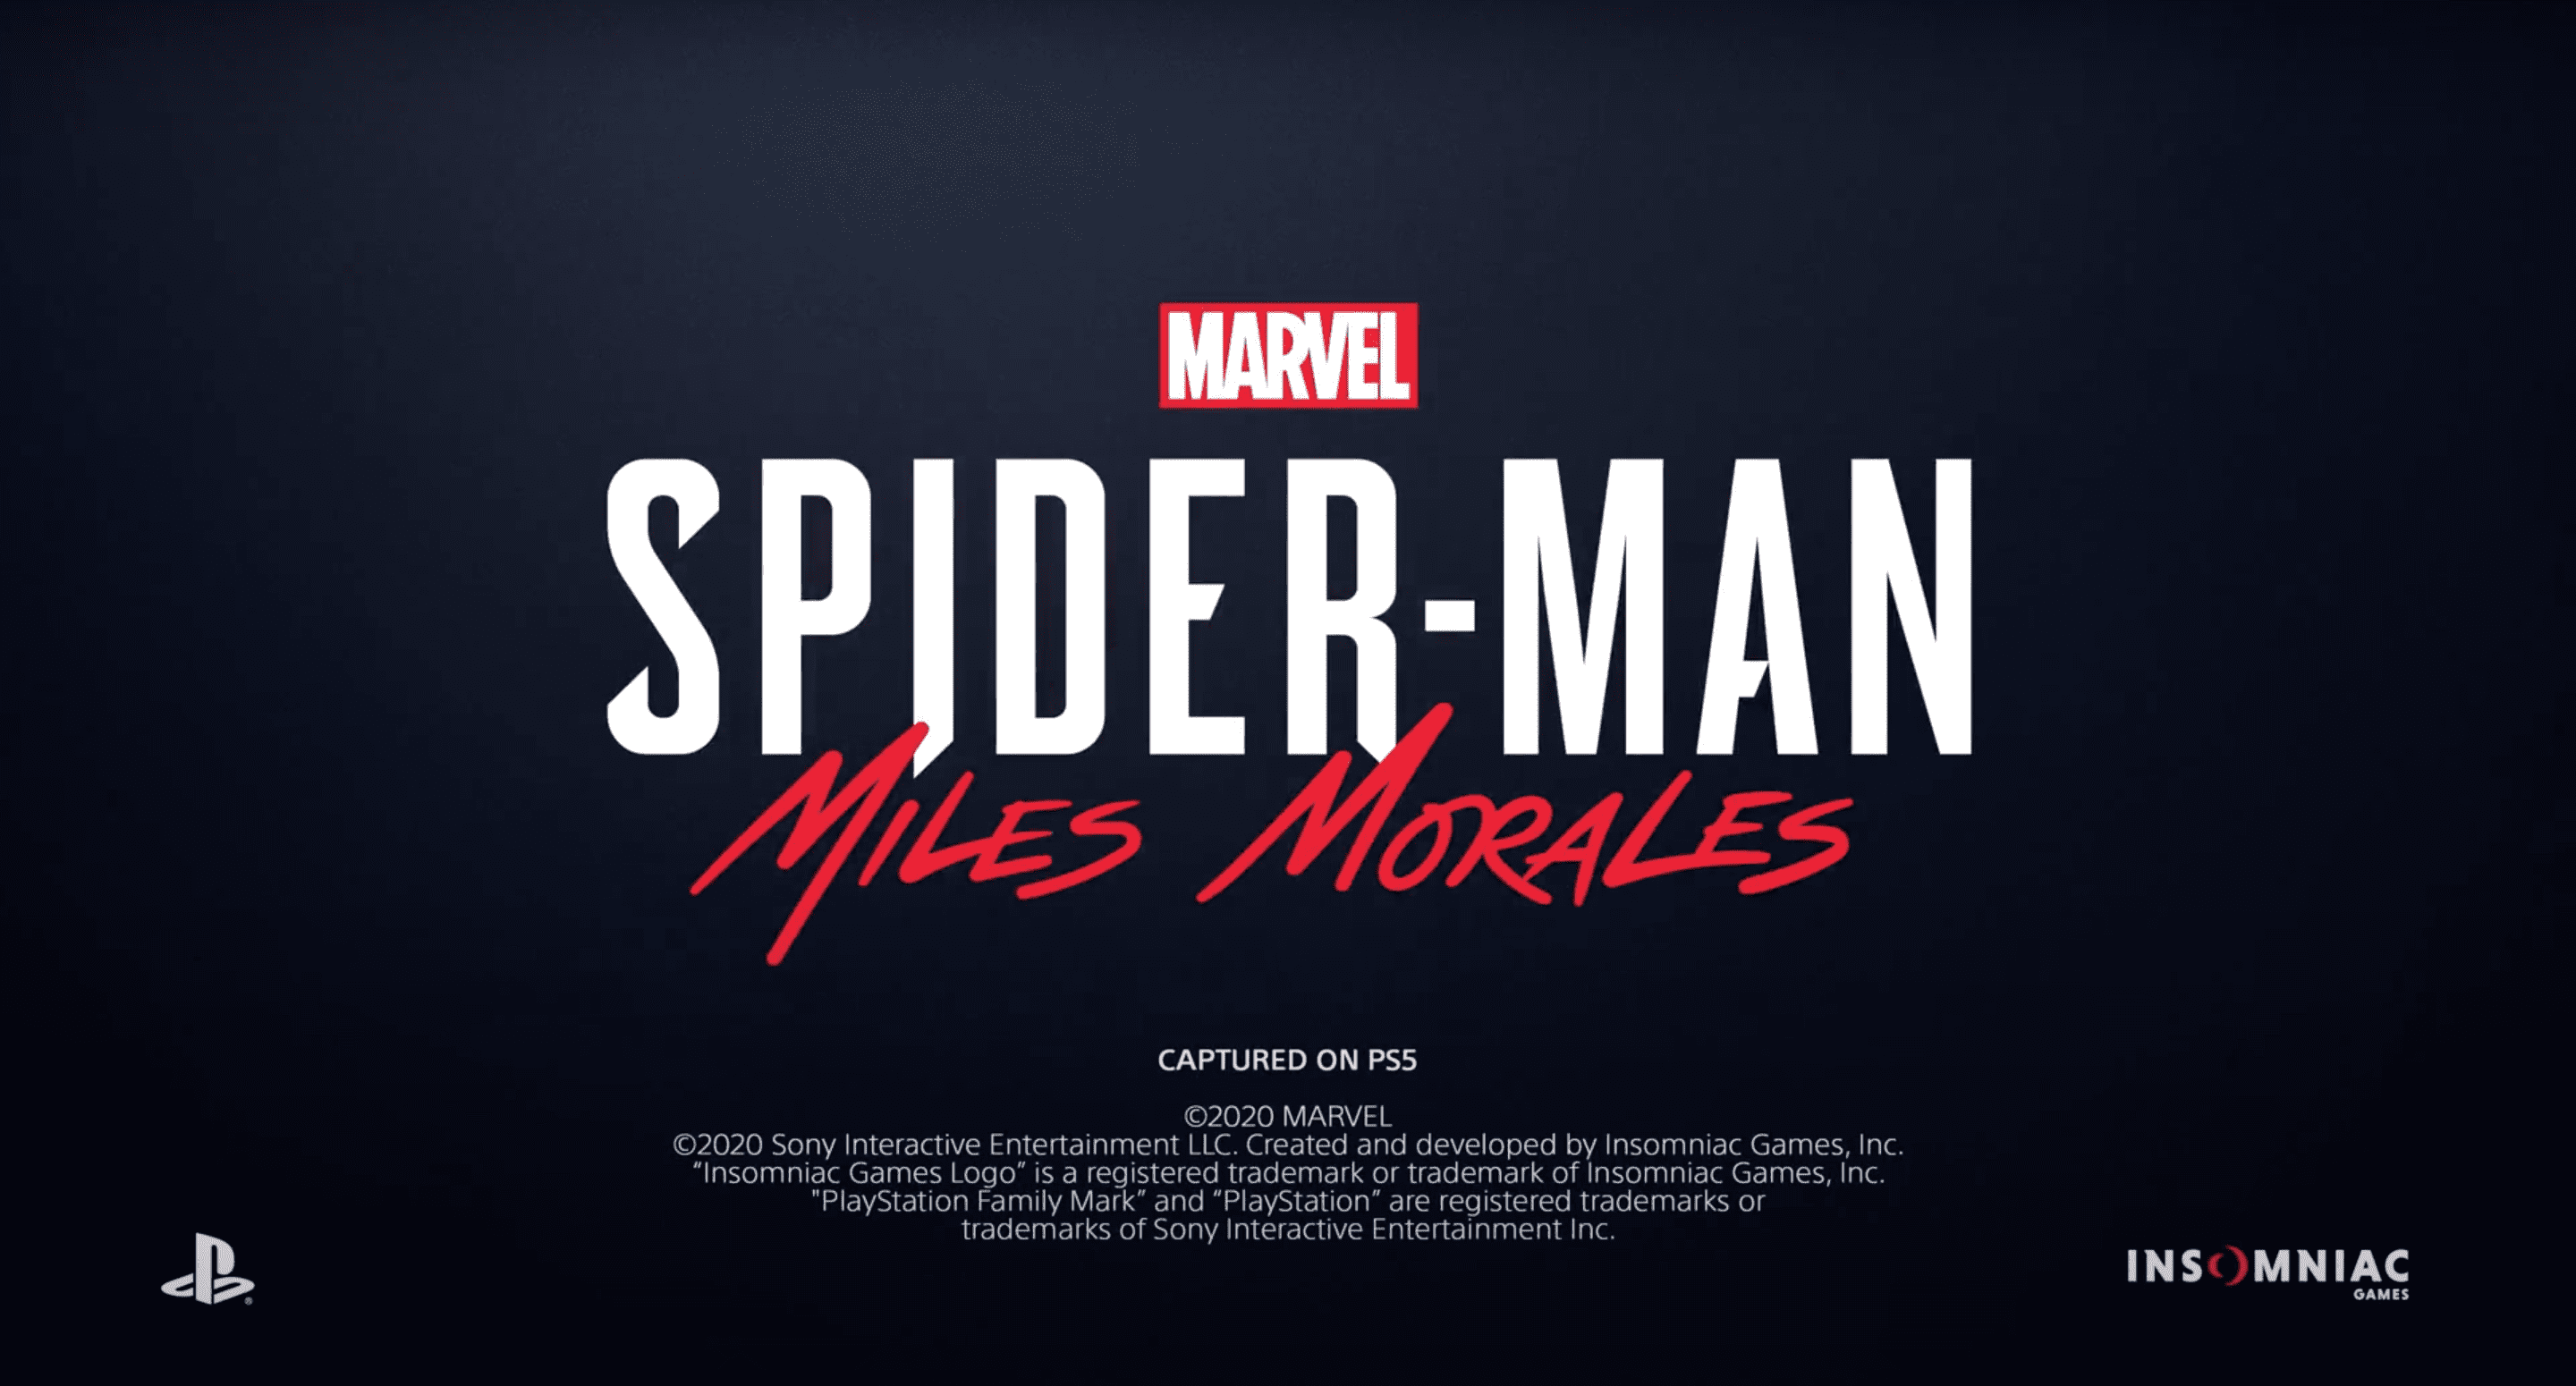 Marvel 'Spider-Man: Miles Morales' on PS5